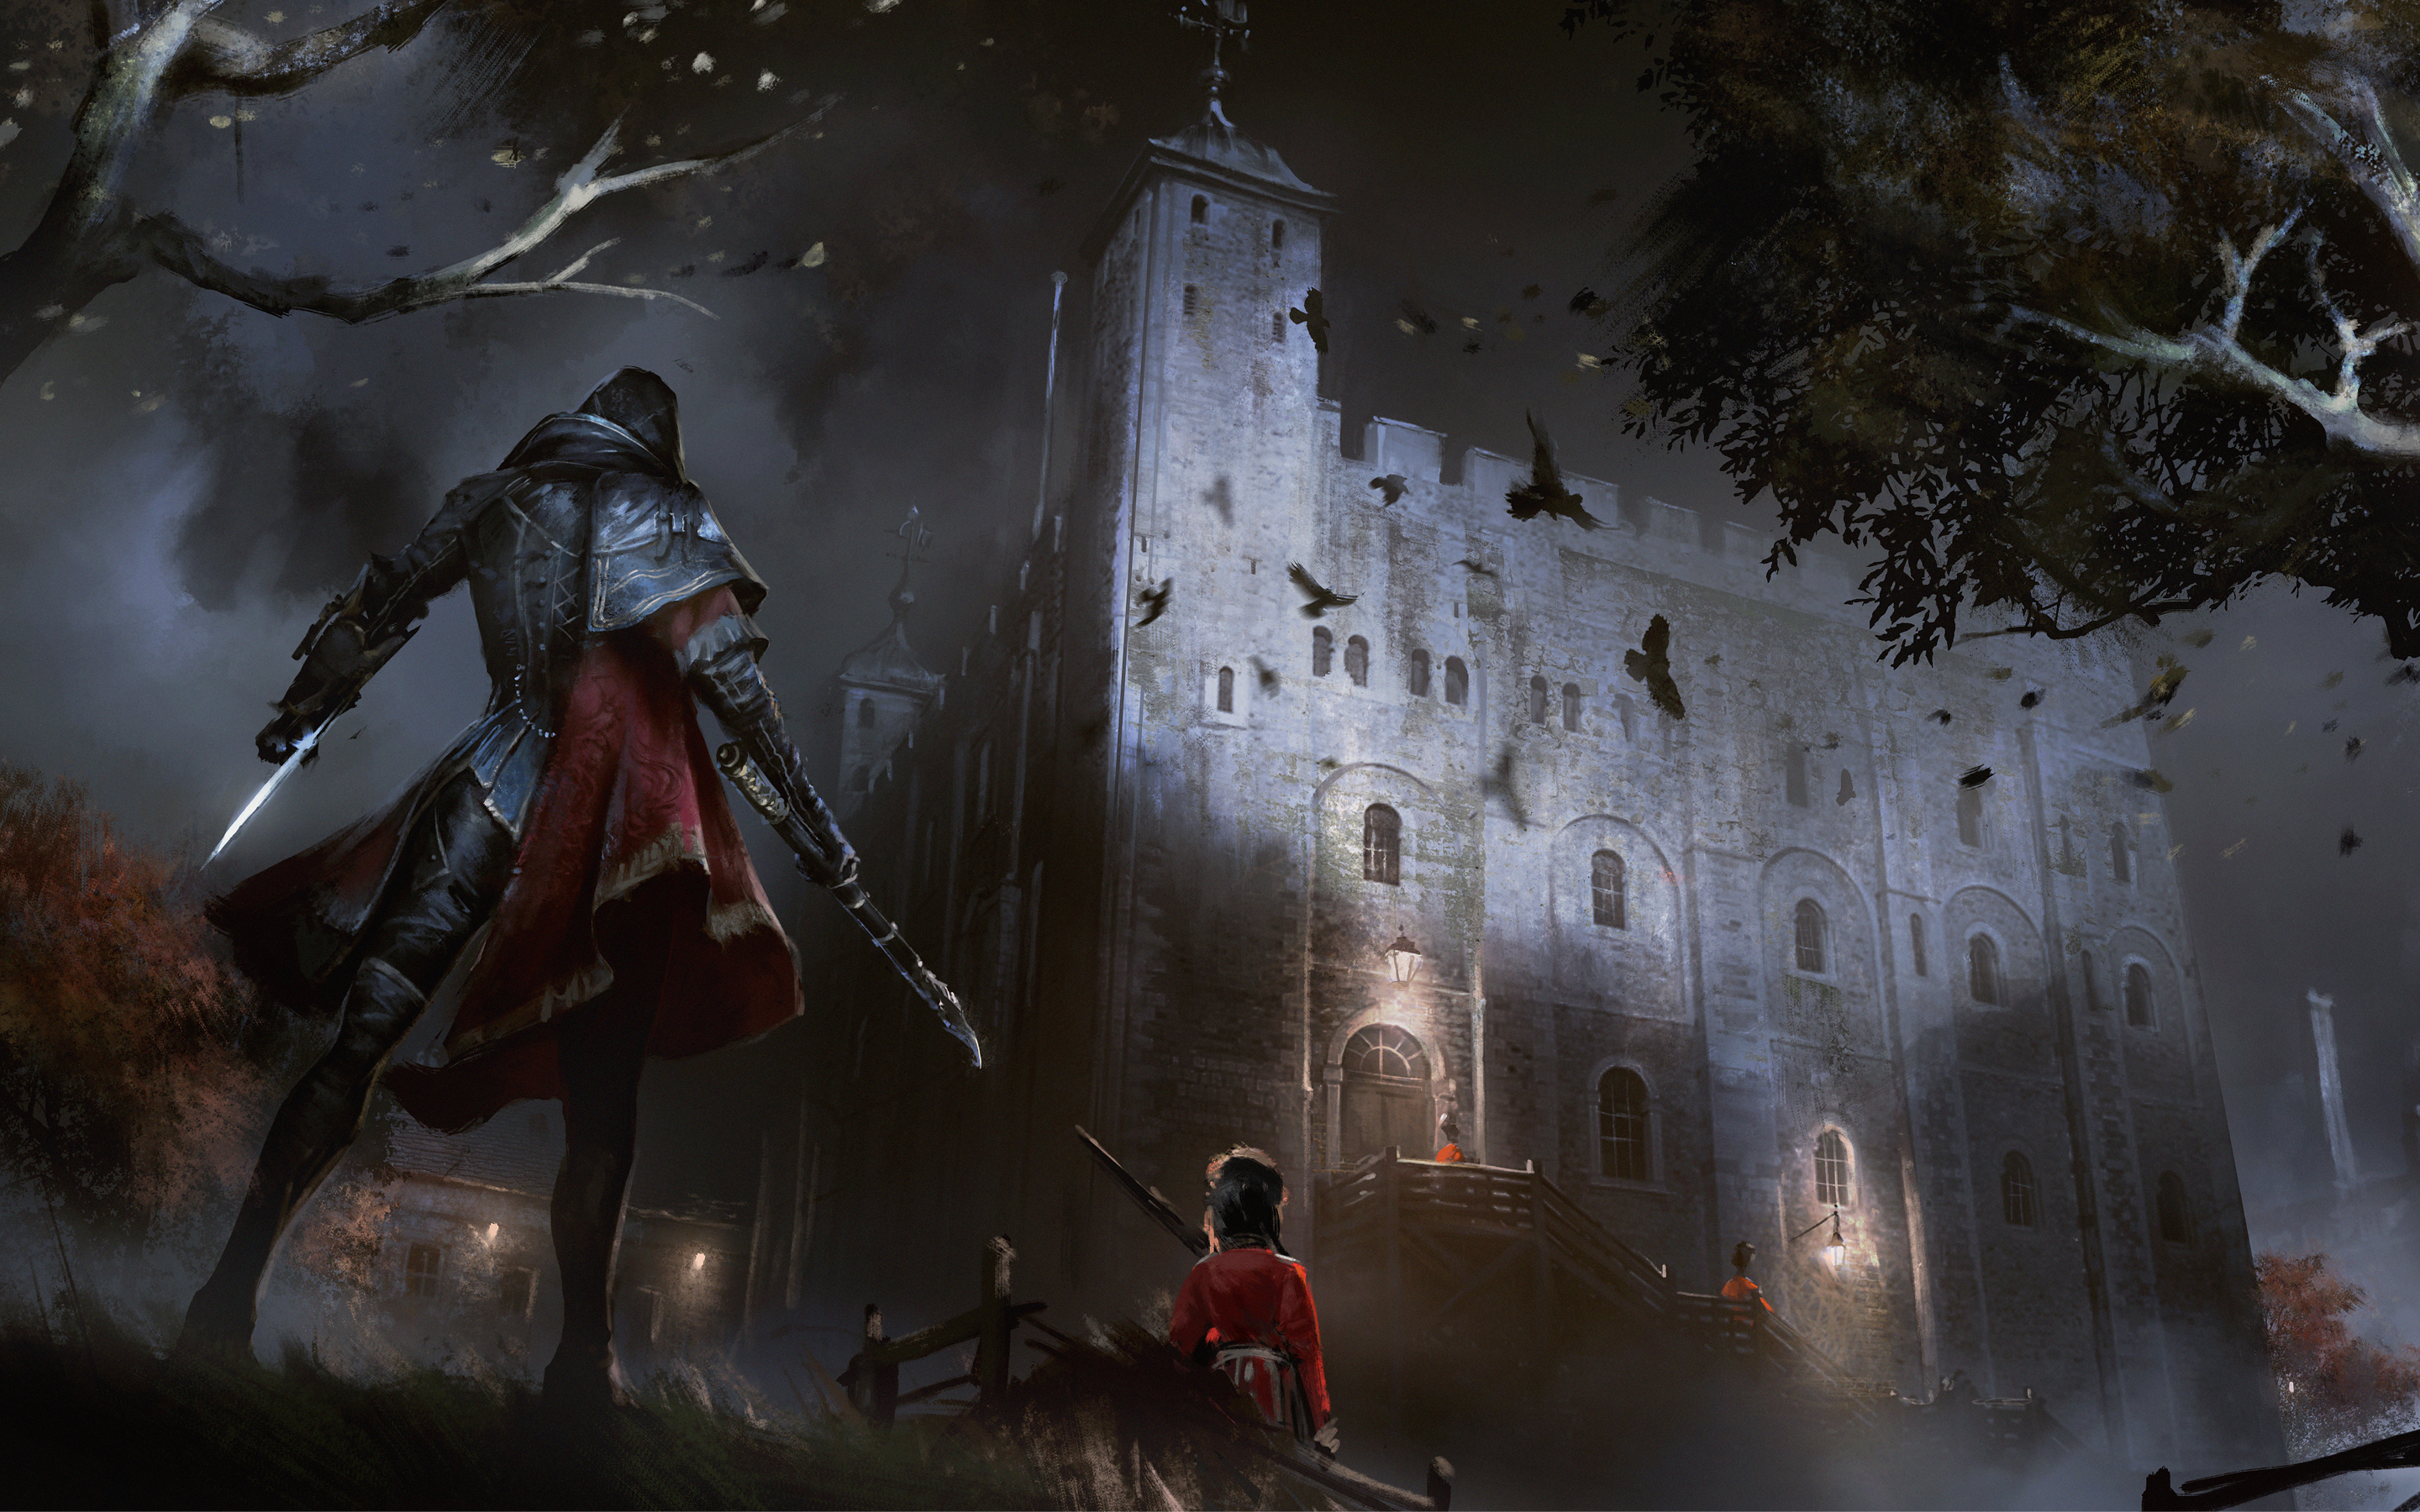 Assassins Creed Wallpaper Hd 1080p Assassins Creed Syndicate New Wallpapers Wallpapers Hd